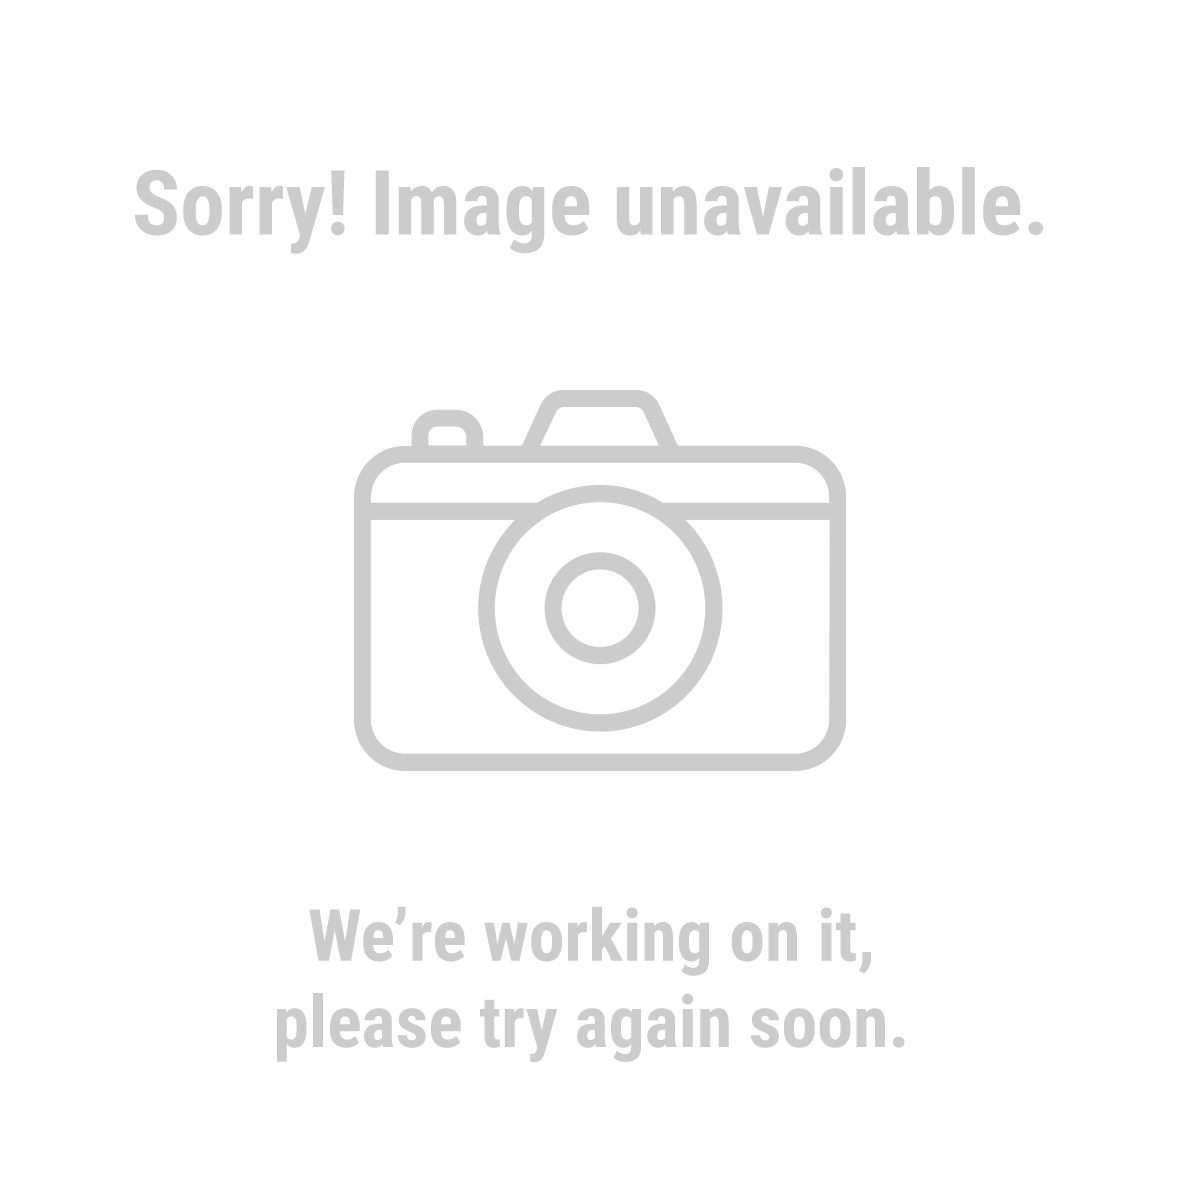 Harbor Freight Trifold (hot dog style) Ramp: - ninjette.org